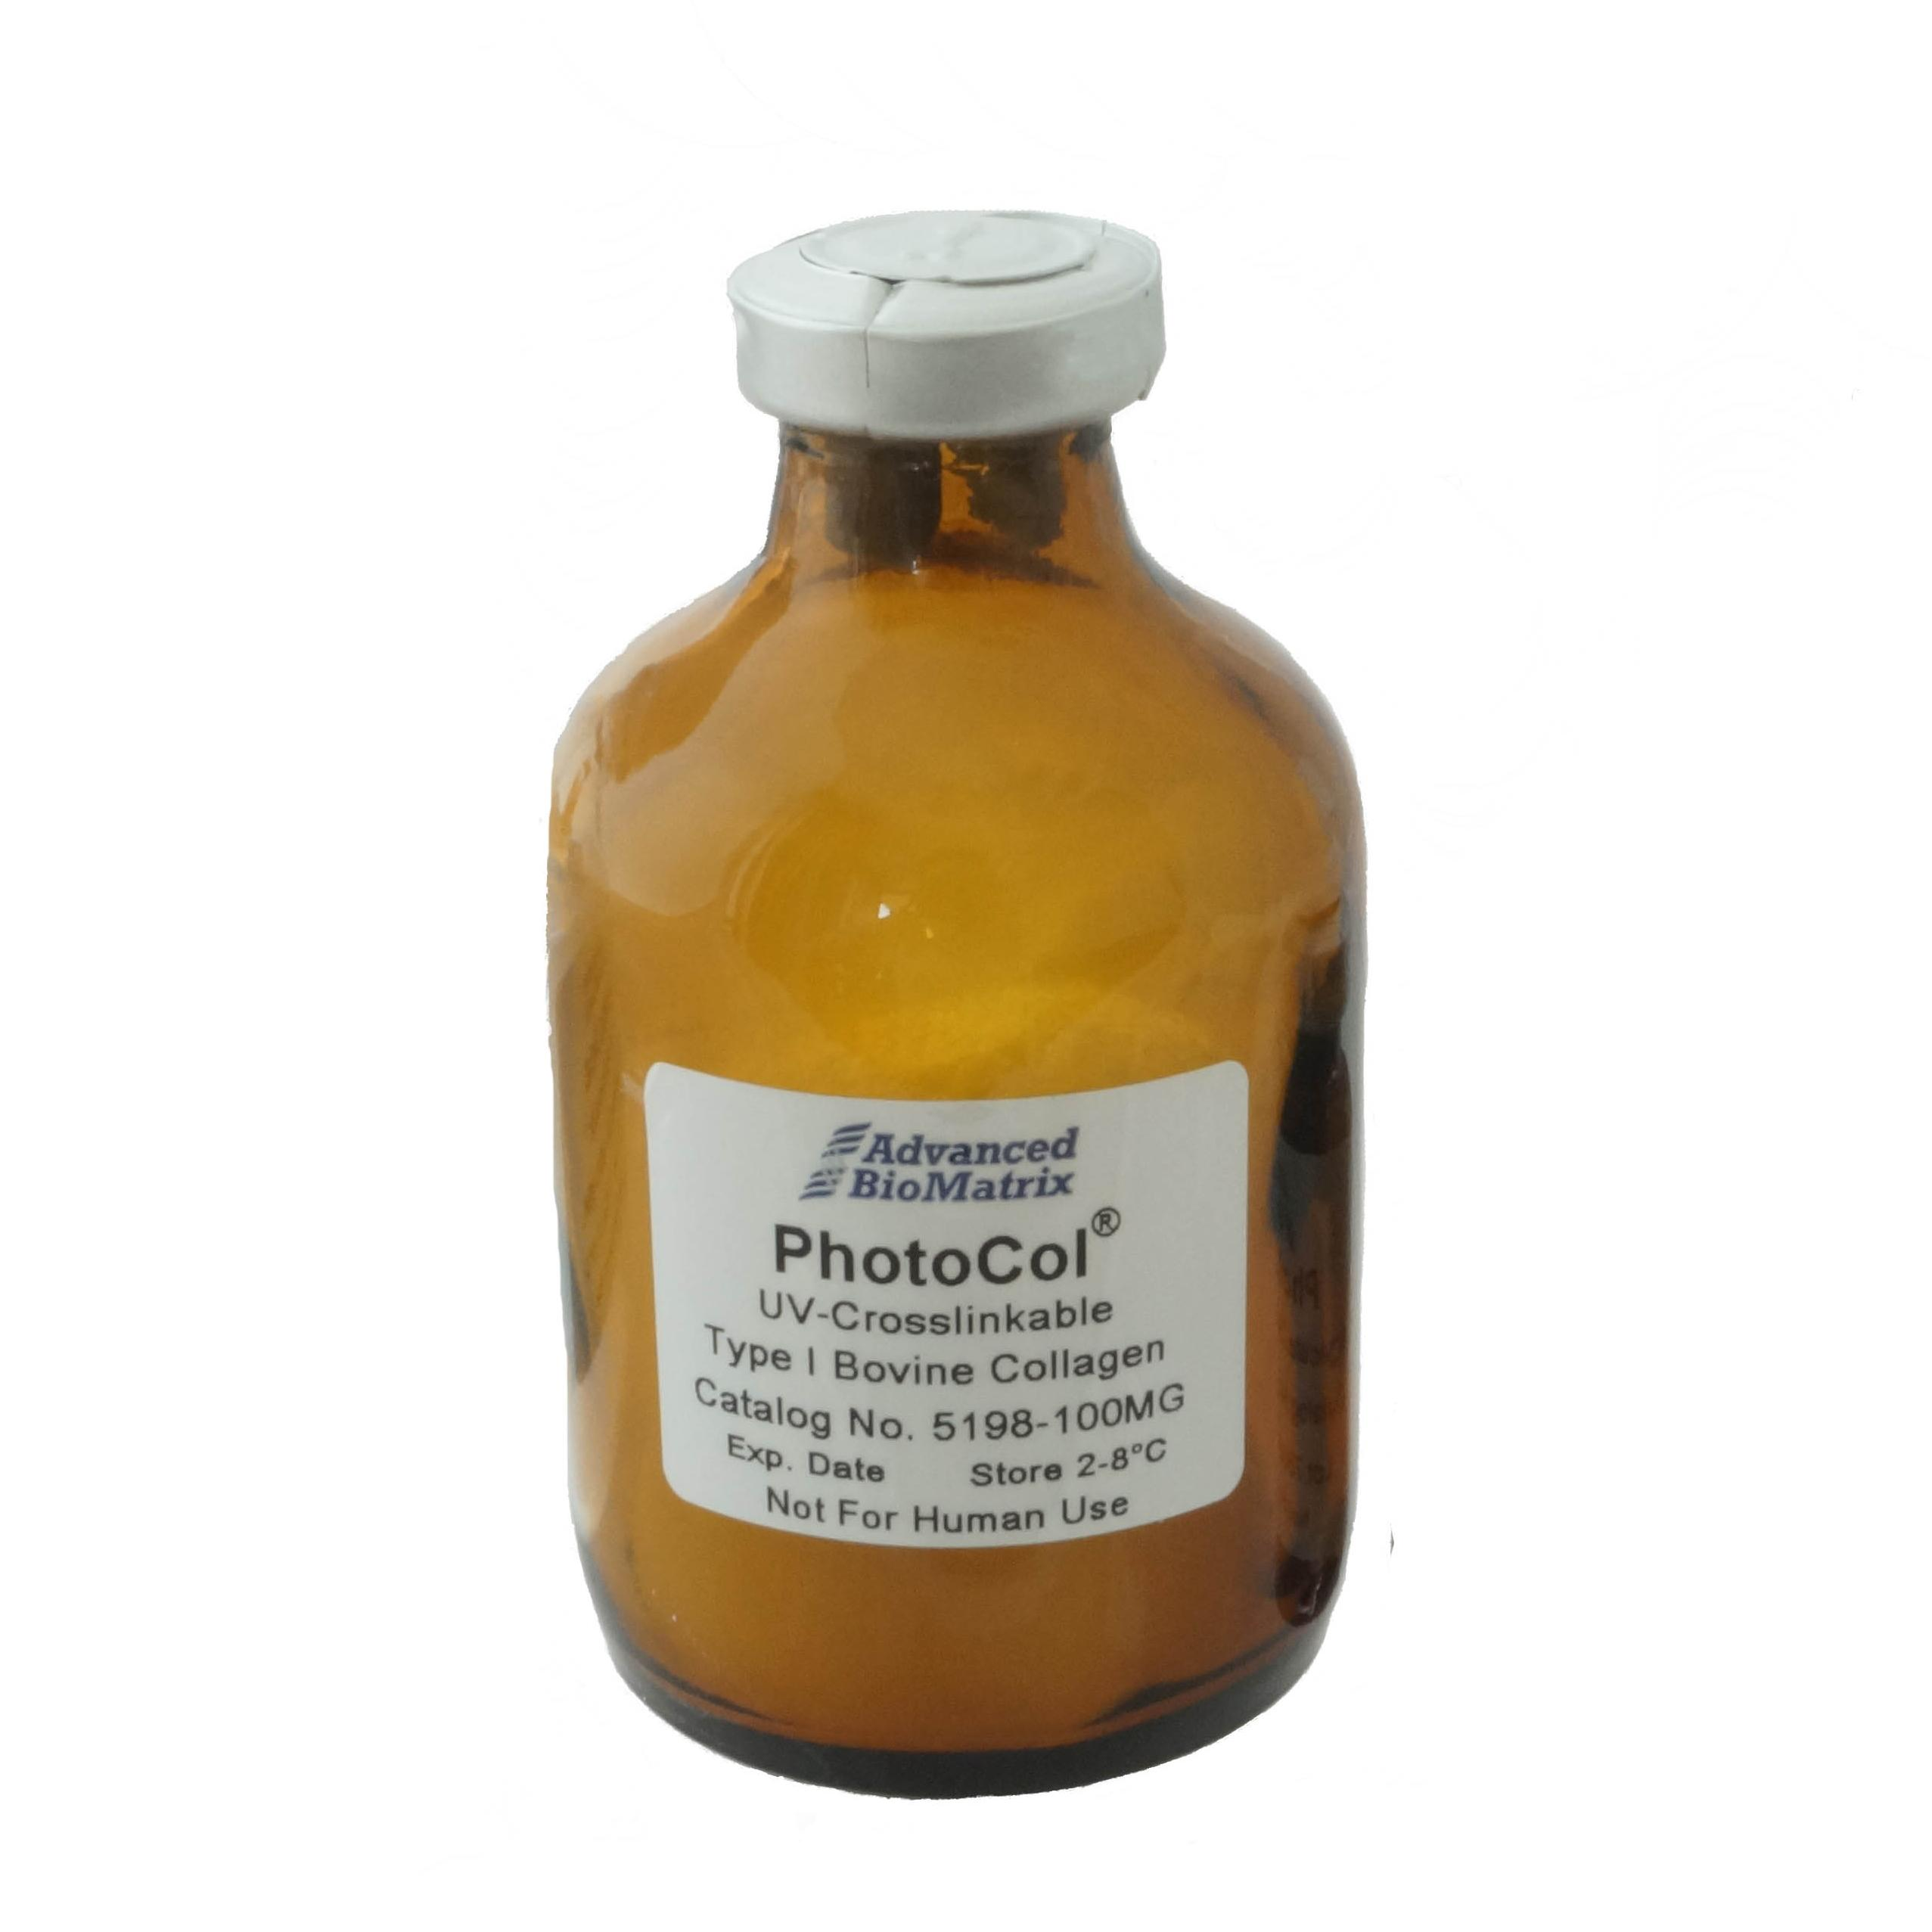 PhotoCol ColMa Methacrylated Collagen from Advanced BioMatrix